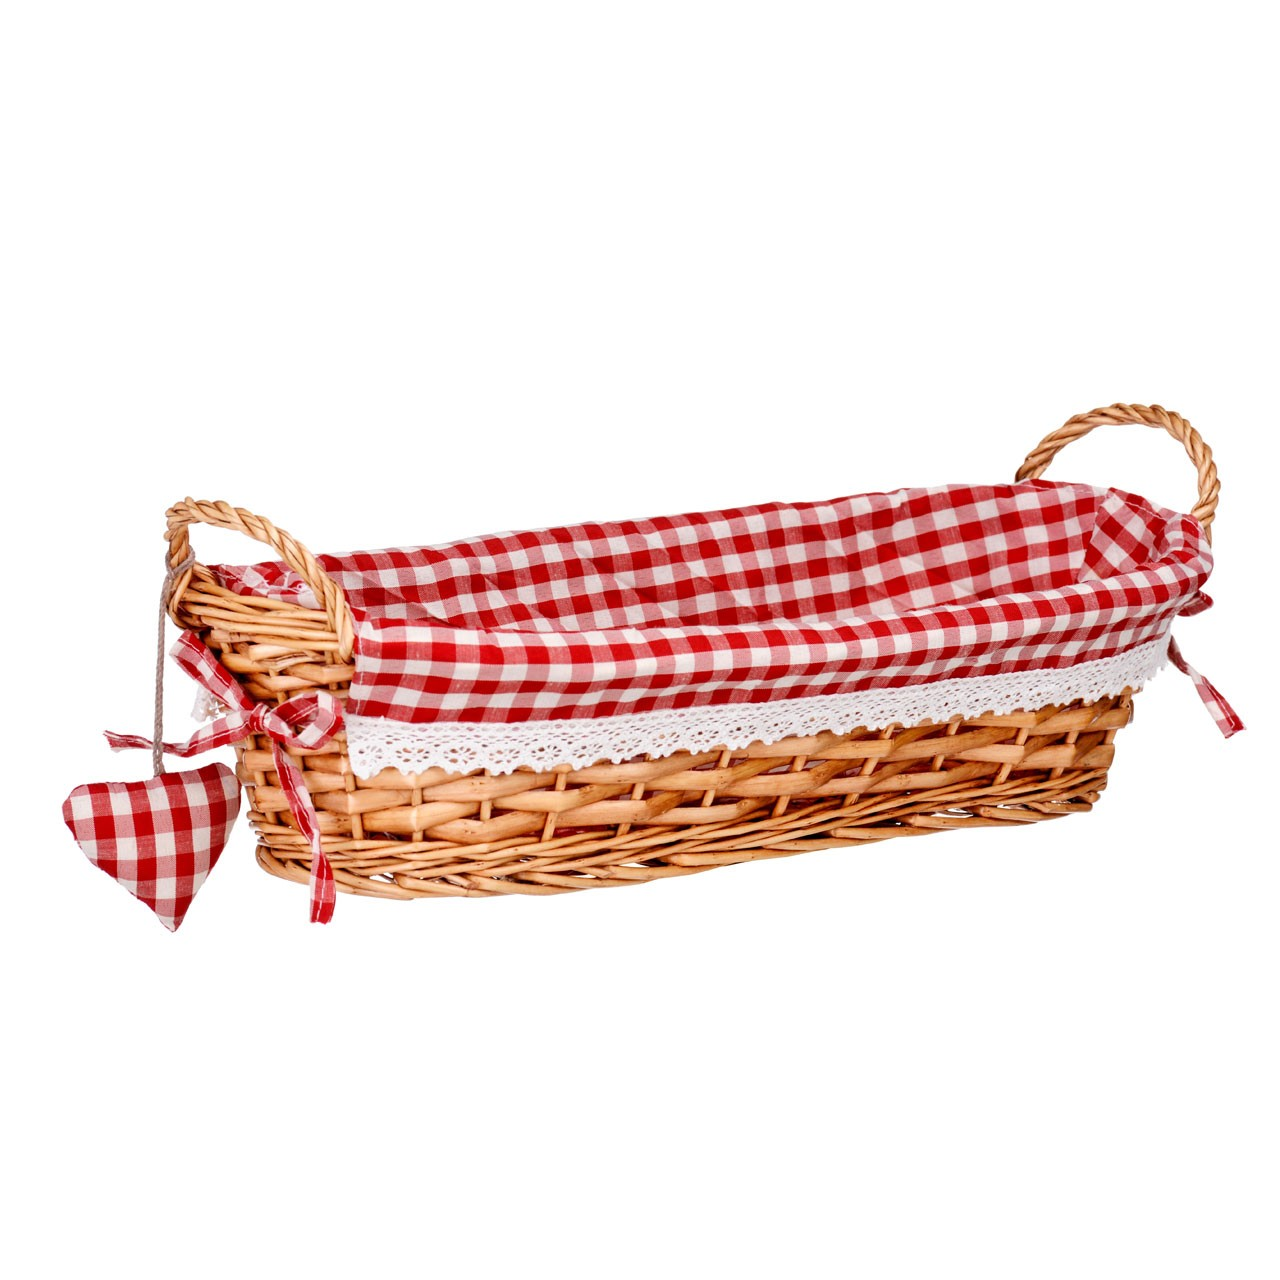 Prime Furnishing Oblong Willow Basket with Gingham Lining - Red